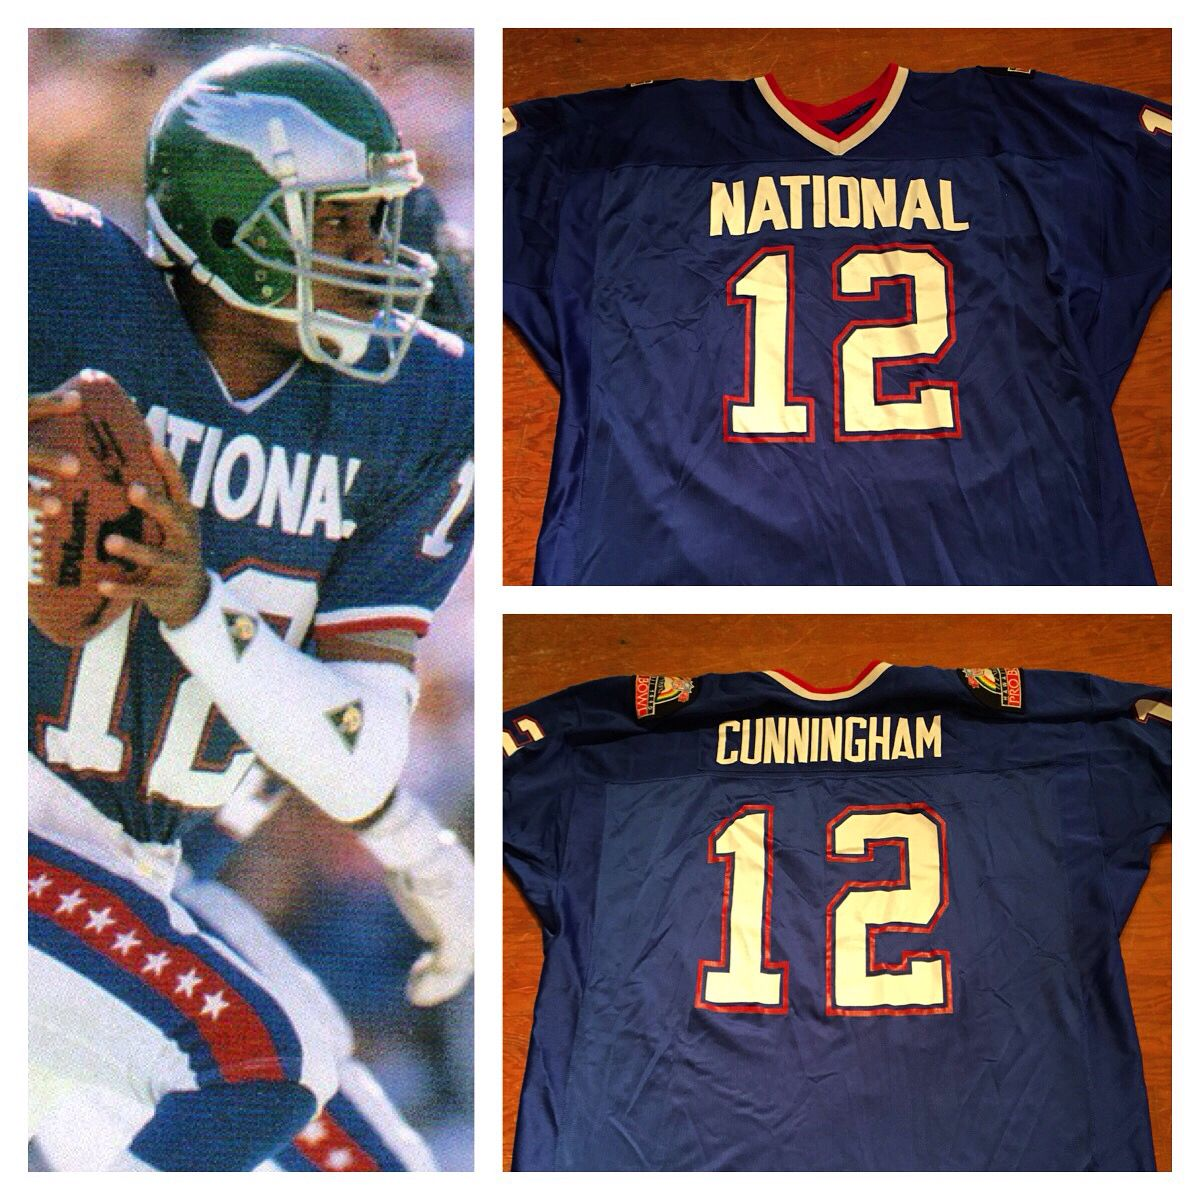 ...  vintage 1990 pro bowl  mitchellandness jersey  ultimateweapon  bcbc.  Find this Pin and more on Philadelphia Eagles by Bucks County Baseball Co. 7335821aa